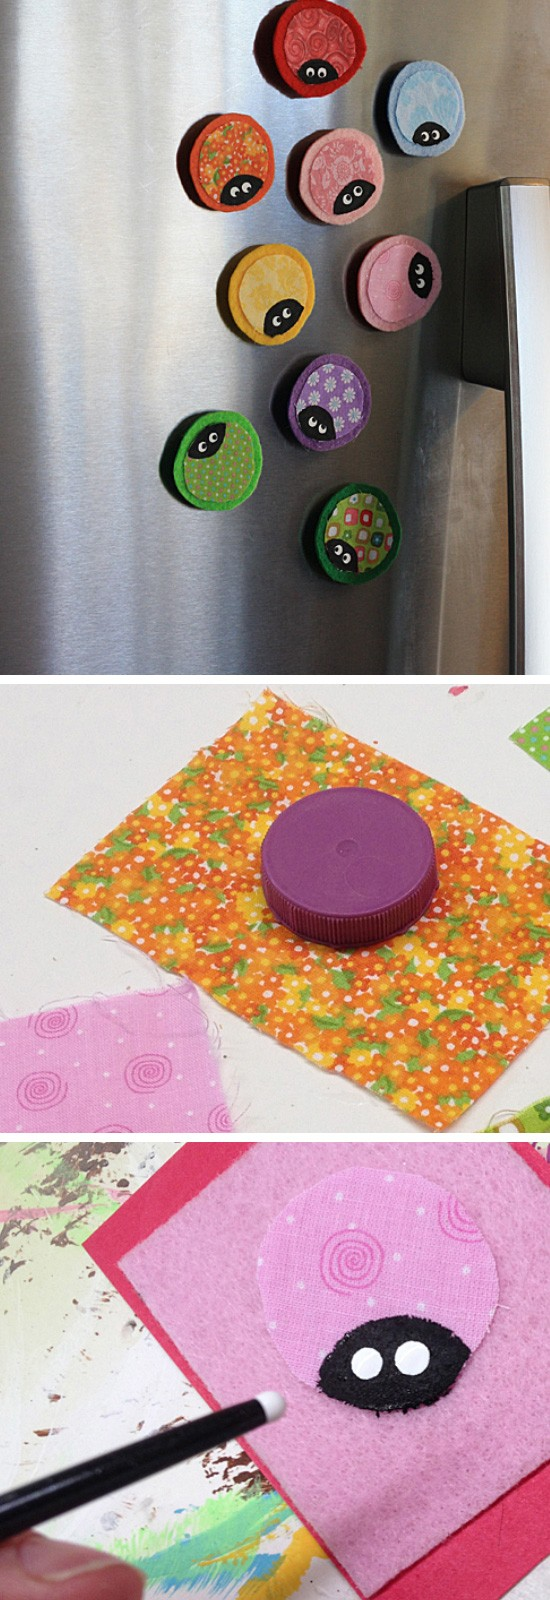 Ladybug Fridge Magnets.